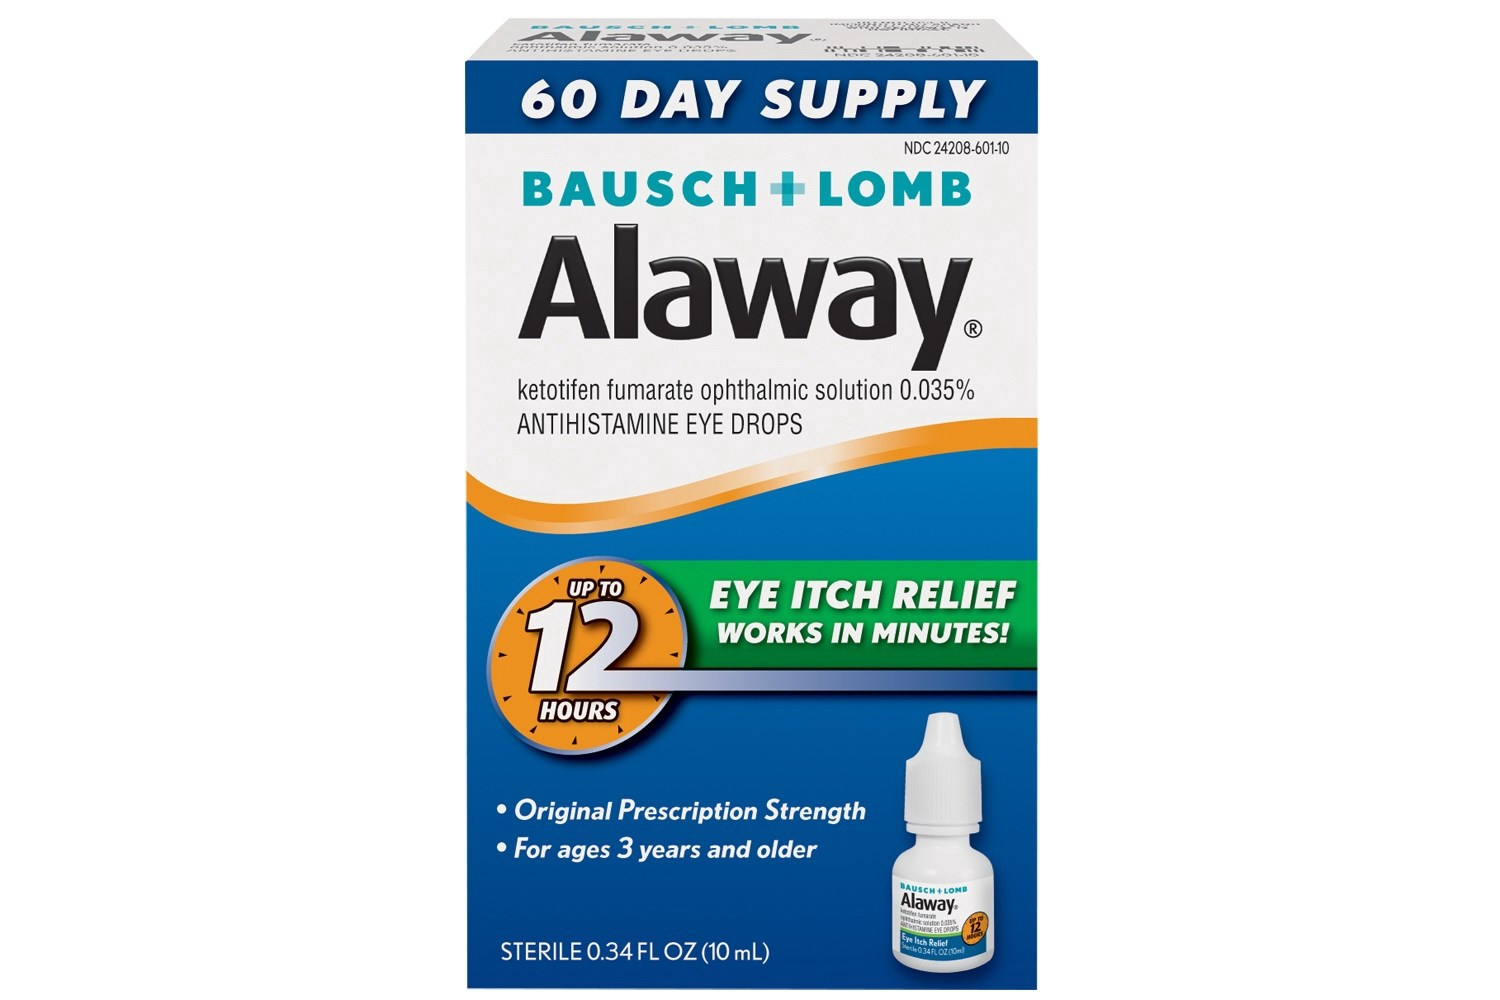 Bausch & Lomb Alaway 60 Day Supply Eye Itch Relief Drops and Treatment (.34 fl oz)